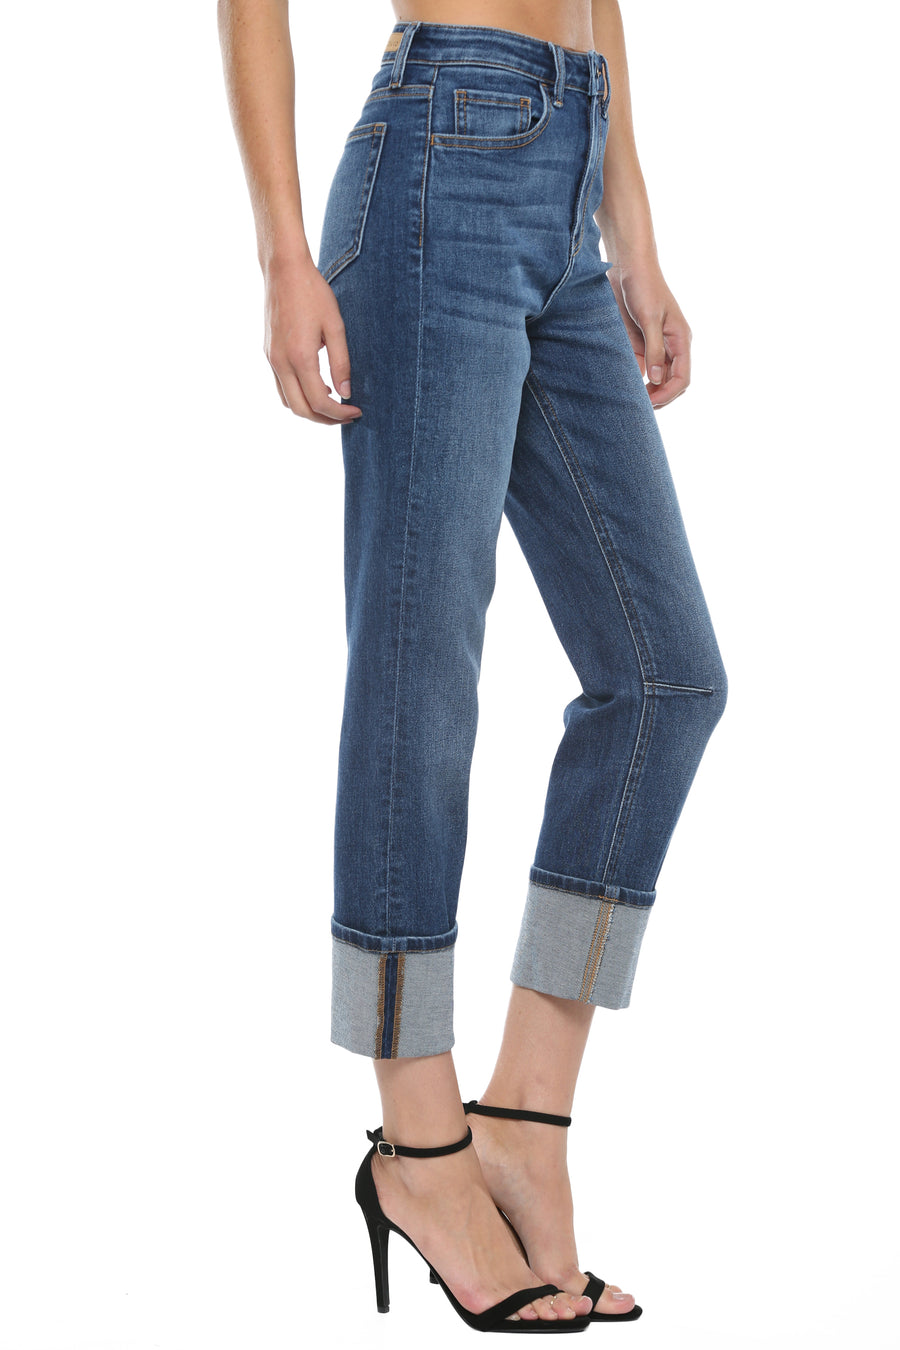 High Rise Straight w. Rounded SS & Wide Cuff